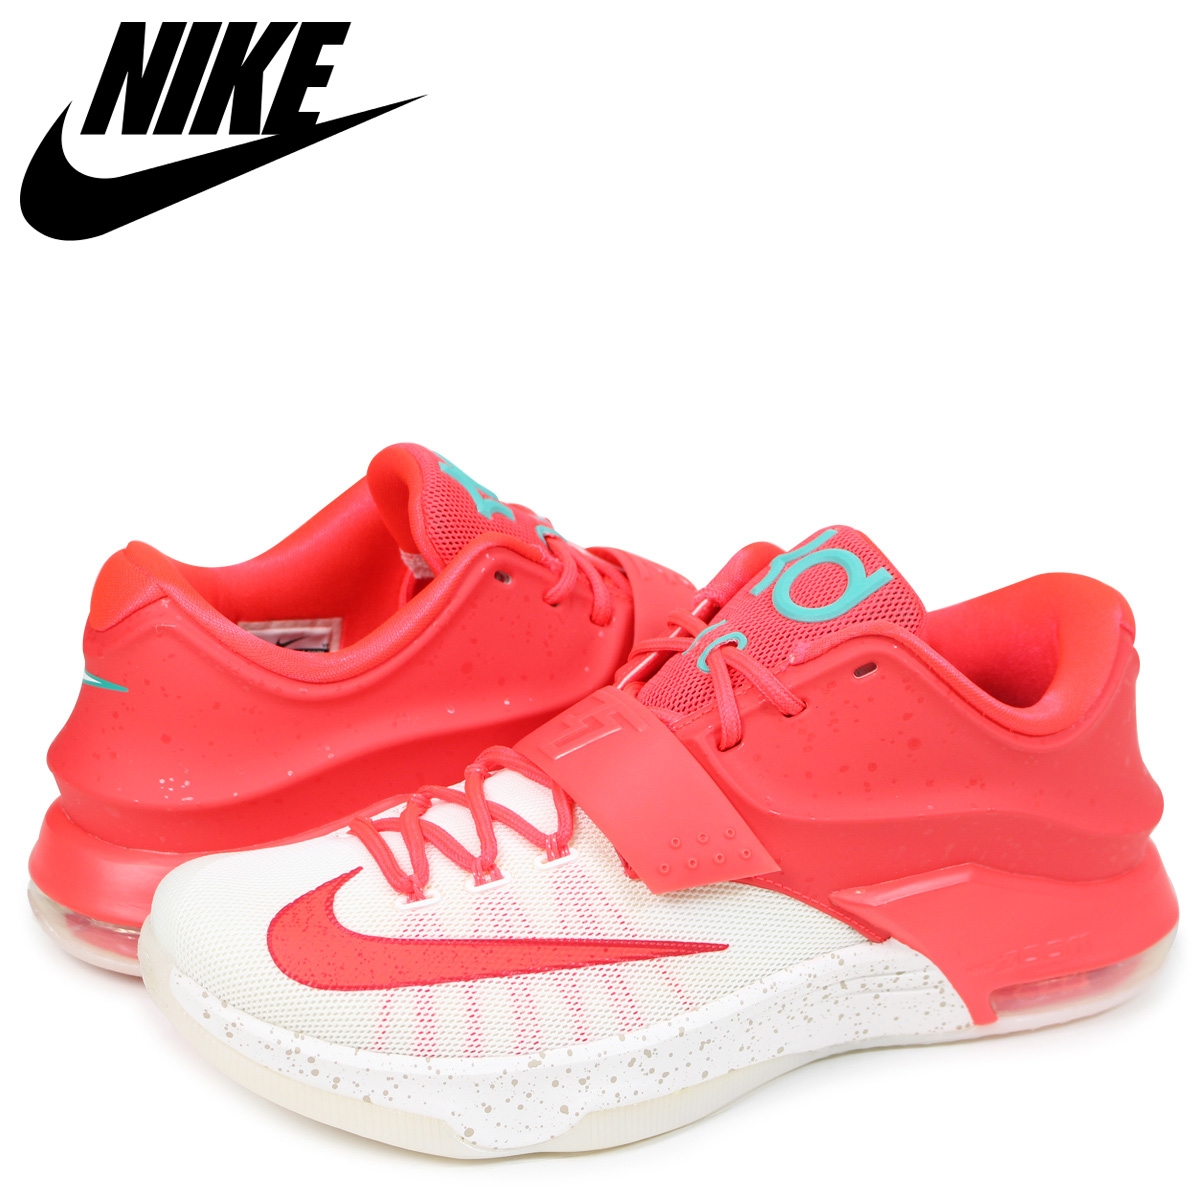 detailed look 1843c d1a91 Nike NIKE KD 7 Kevin Durant sneakers men XMAS red 707,560-613